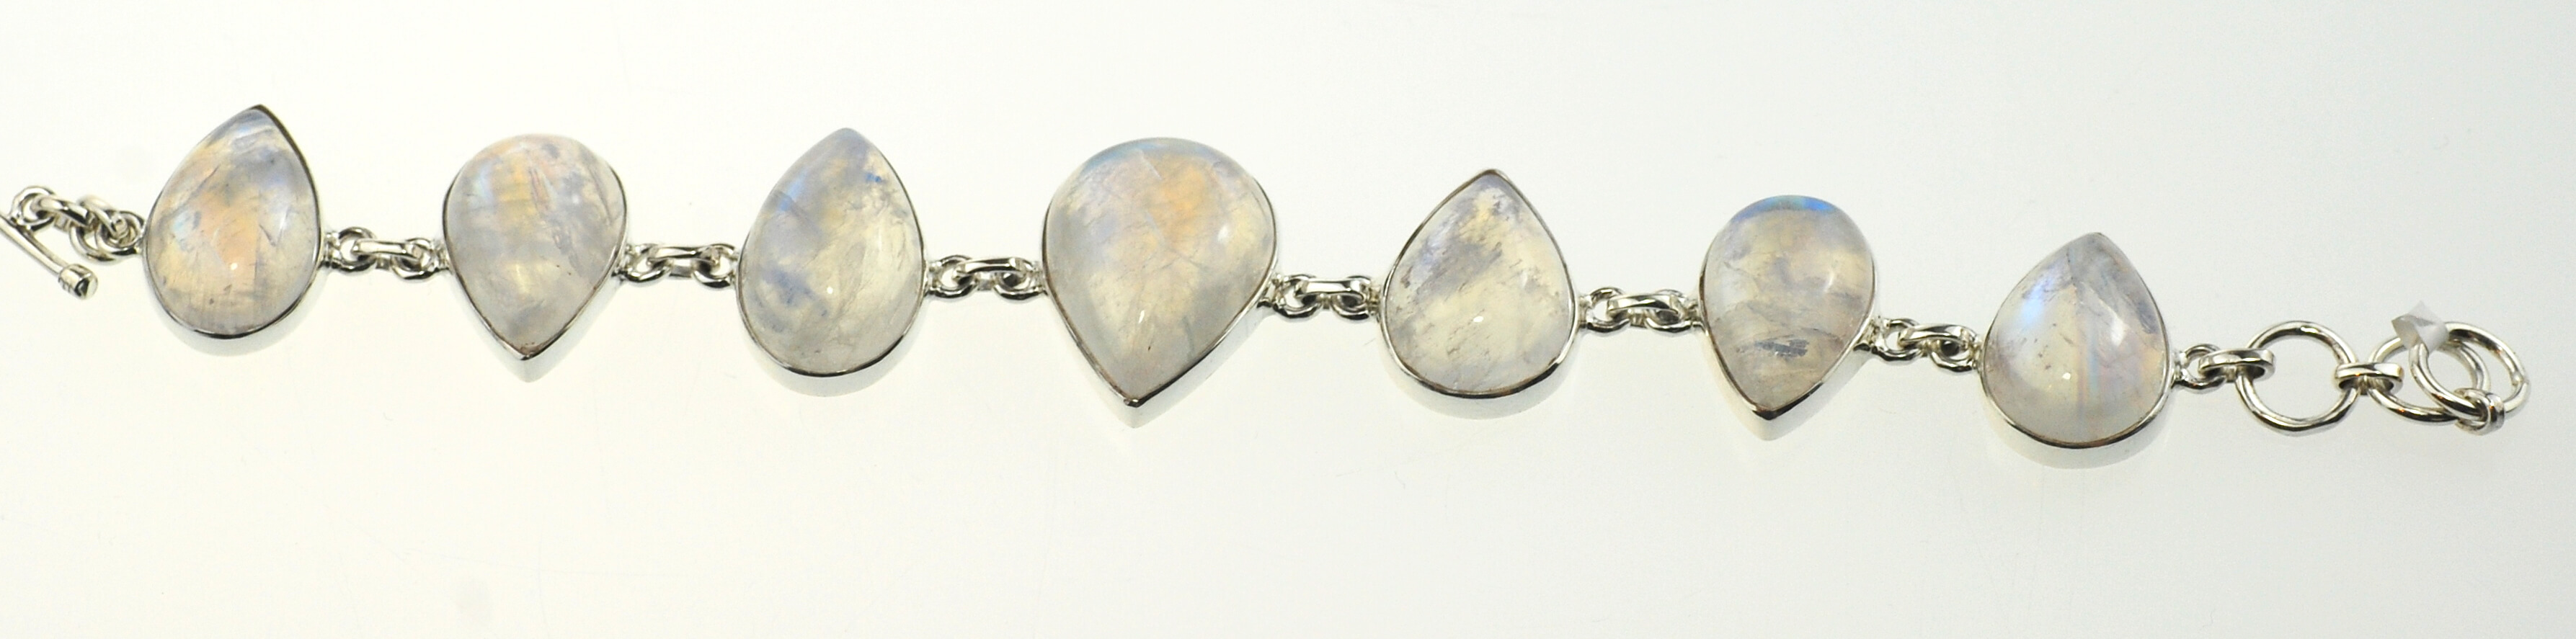 image shows rainbow moonstone bracelet